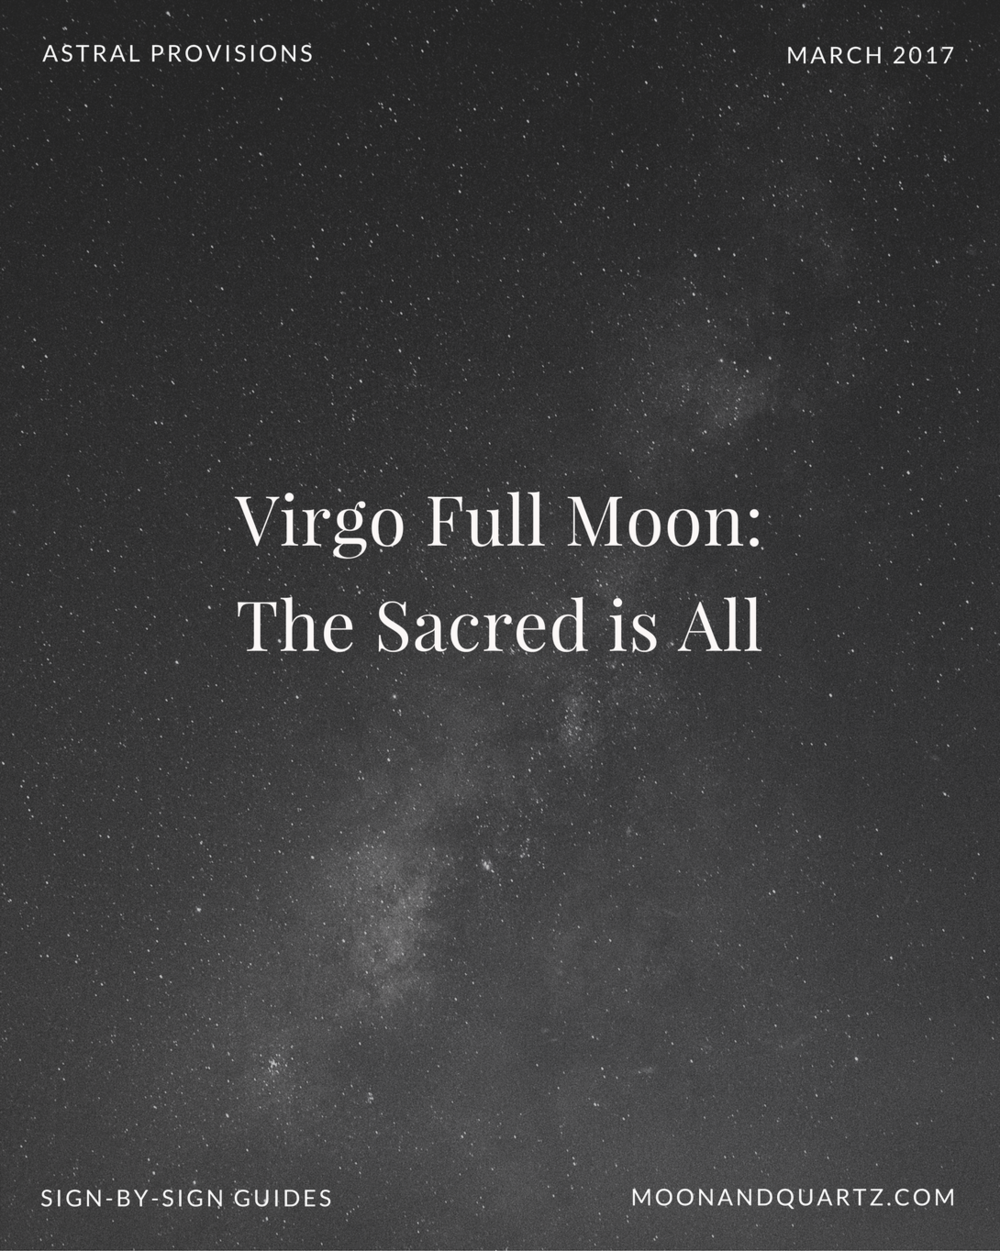 The Virgo Full Moon is exact at 7:54am Pacific time on Sunday, turning our awareness to the ways in which our daily habits and practices engage with our higher creative and spiritual ideals. For an in-depth look at how to work with this energy based on your Sun and/or rising sign, the Moon Guides are live and available for download!